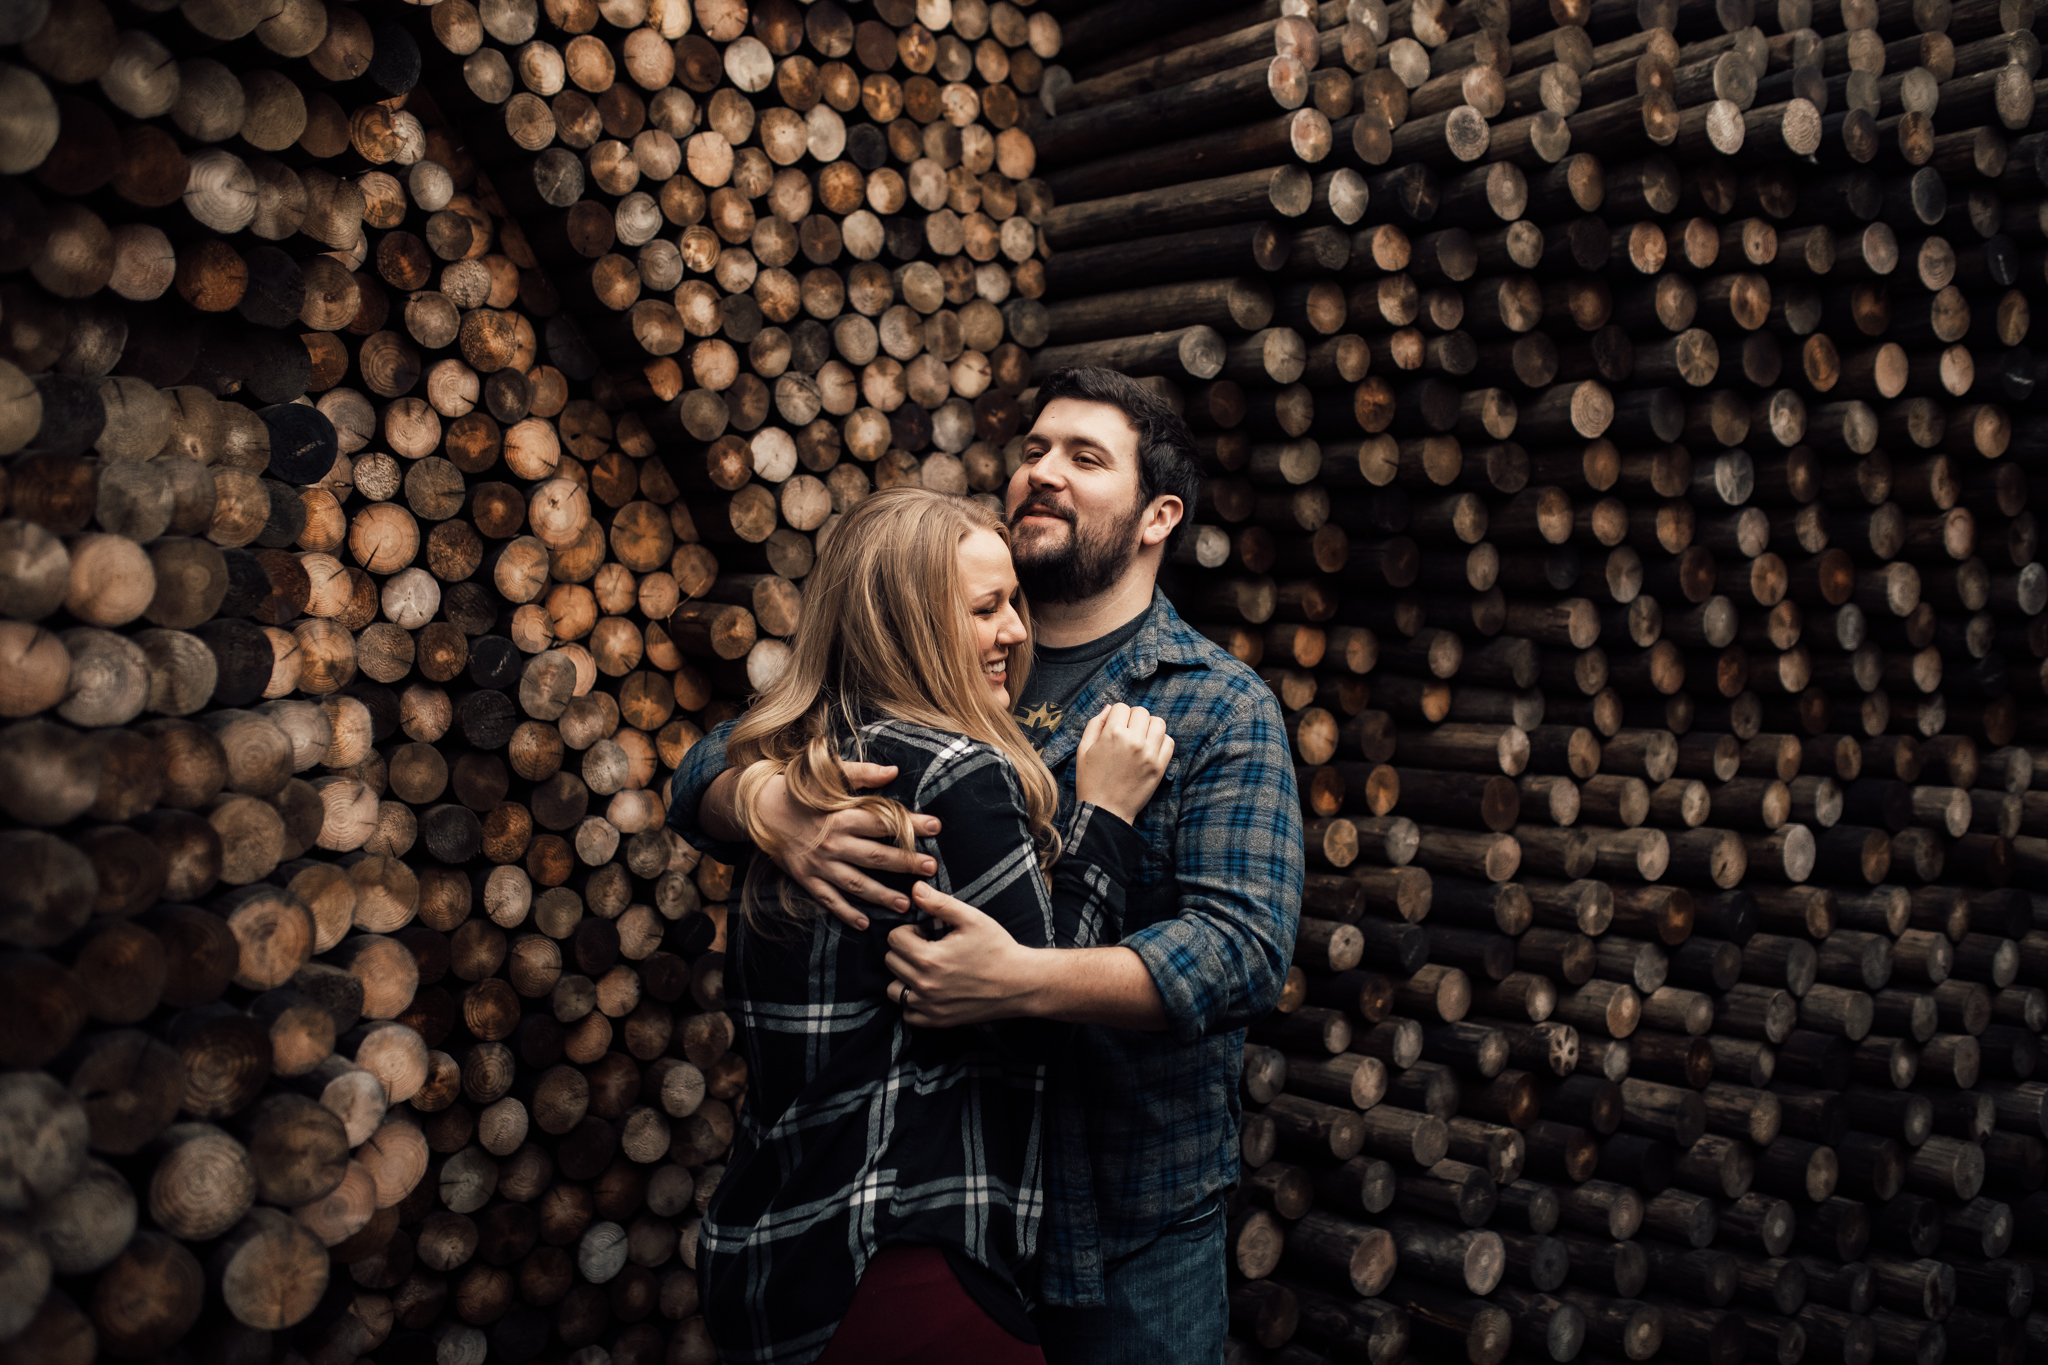 wiseacre-brewing-wedding-photographer-the-warmth-around-you-cassie-cook-photography (17 of 64).jpg